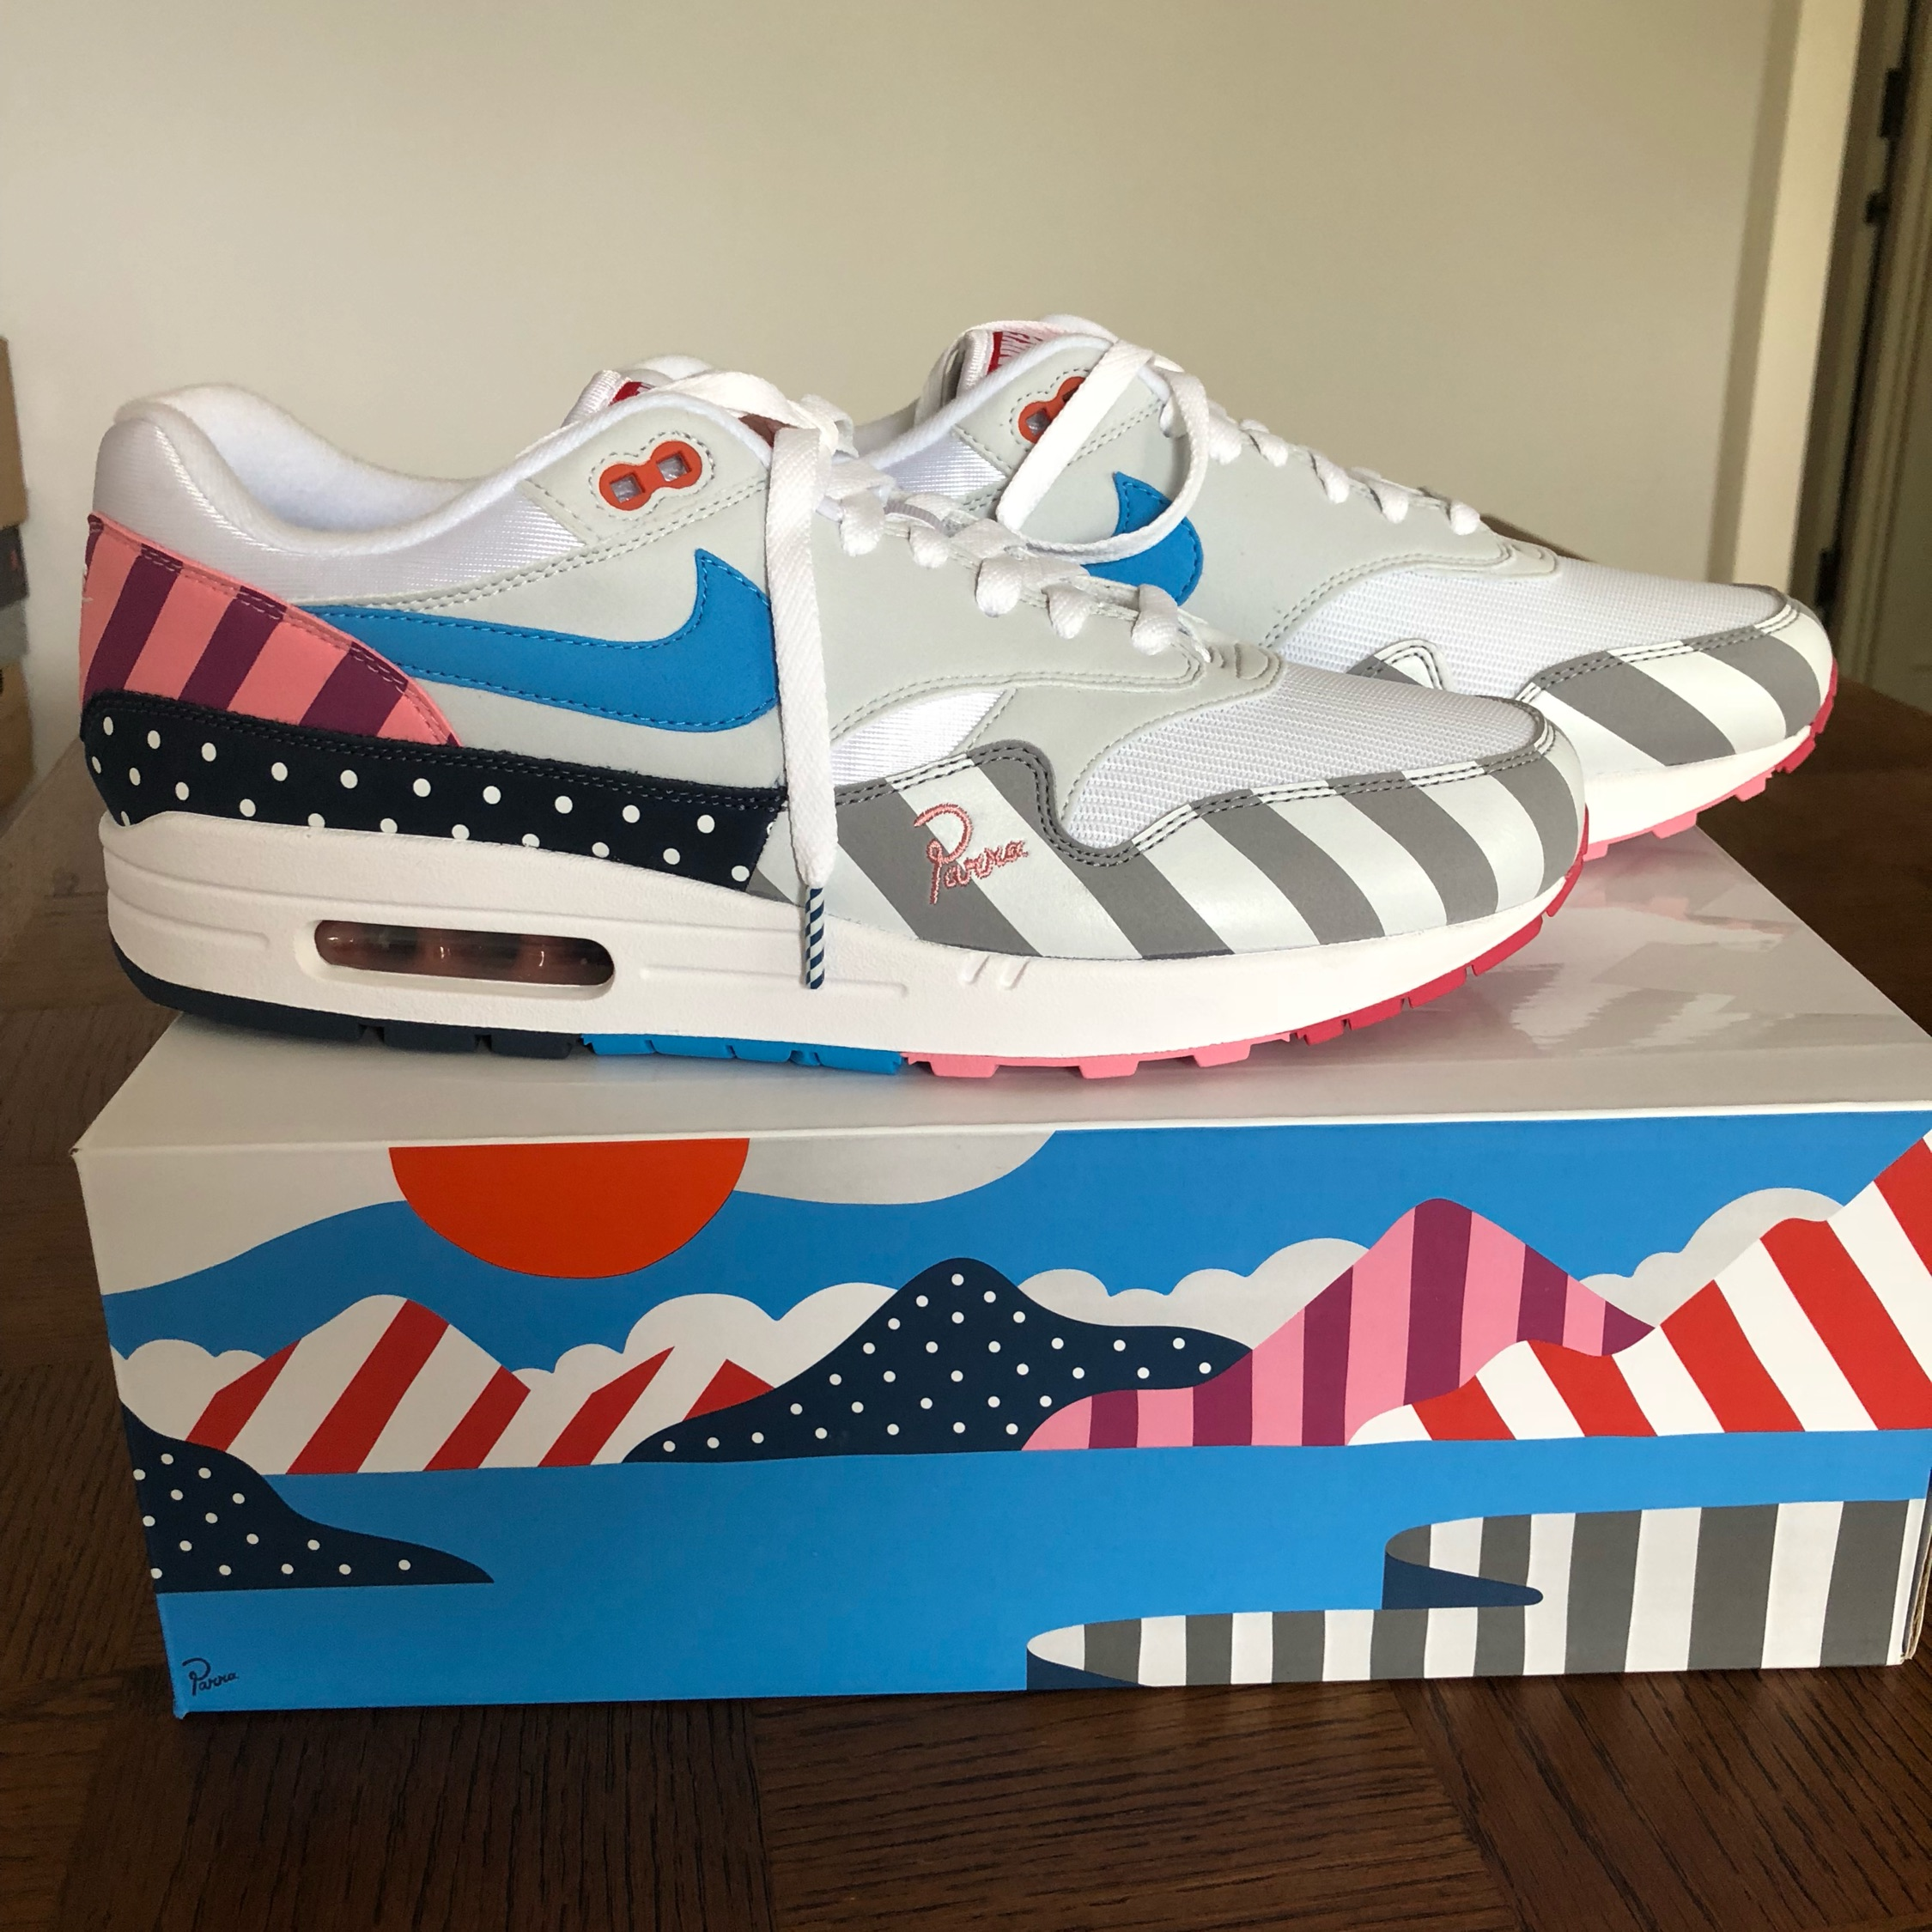 classic fit 061e7 f2ac6 Nike Air Max 1 Parra Deadstock Uk 10